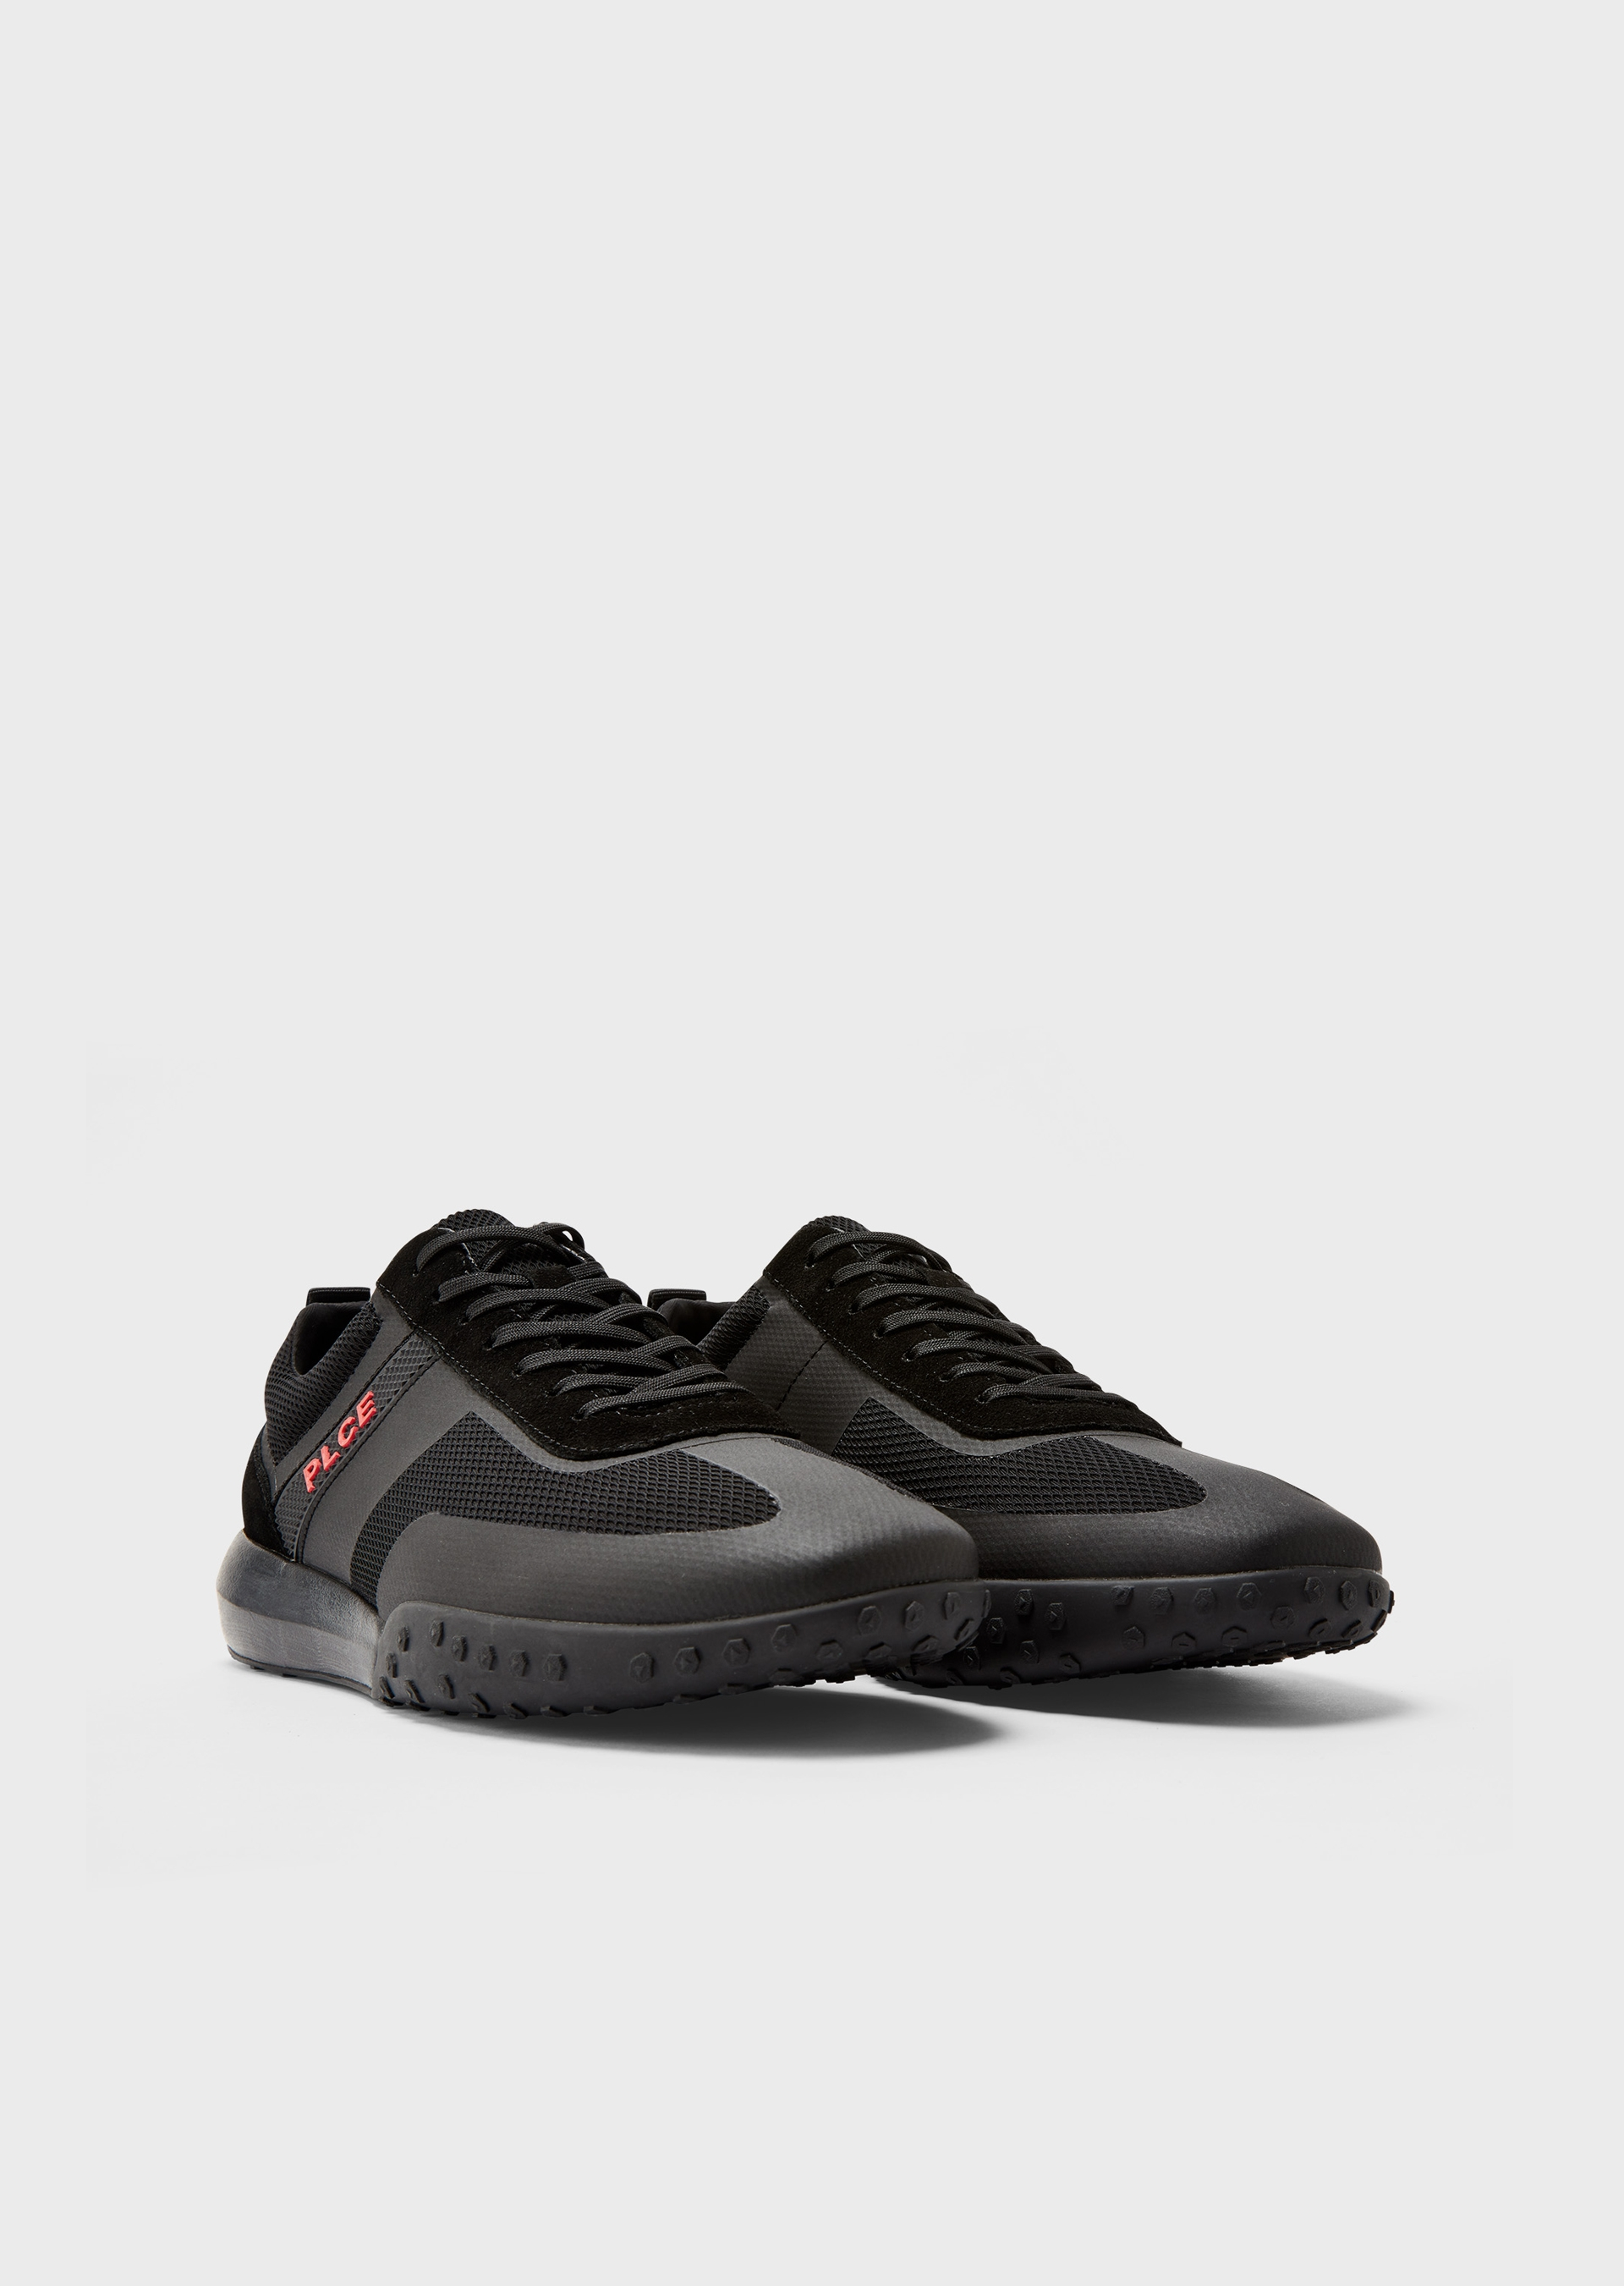 Project Technical Black Fabric Sneakers second_image